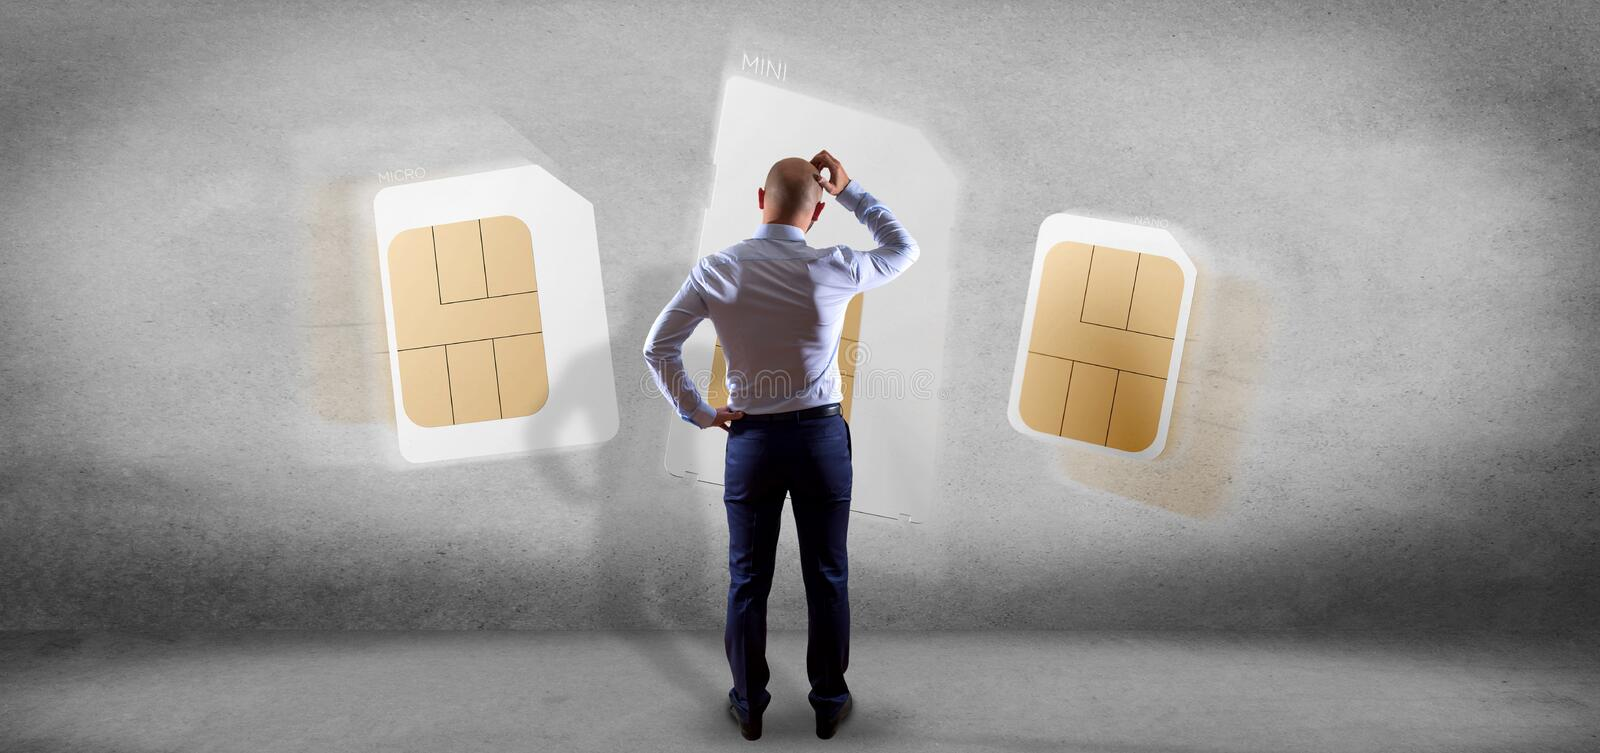 Businessman holding Different size of a smartphone sim card 3d rendering. View of a Businessman holding Different size of a smartphone sim card 3d rendering stock photo